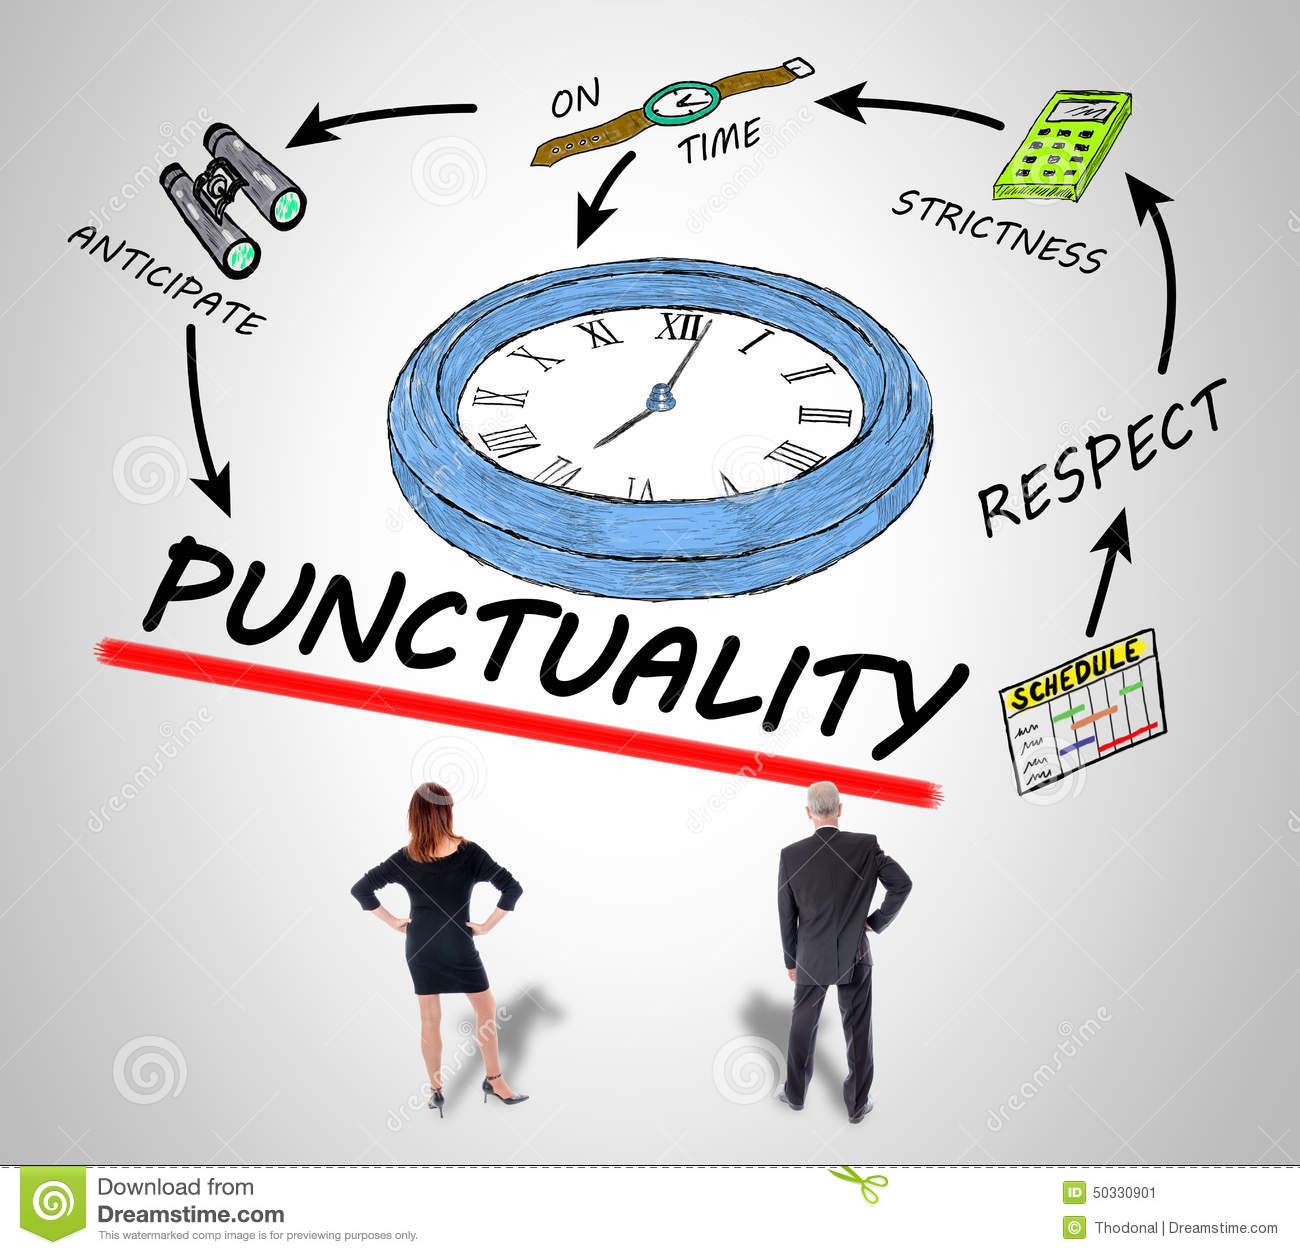 punctuality in the workplace It can be easy to take a narrow view on the concept of time and think that all  cultures value punctuality in the workplace and strict deadlines like.